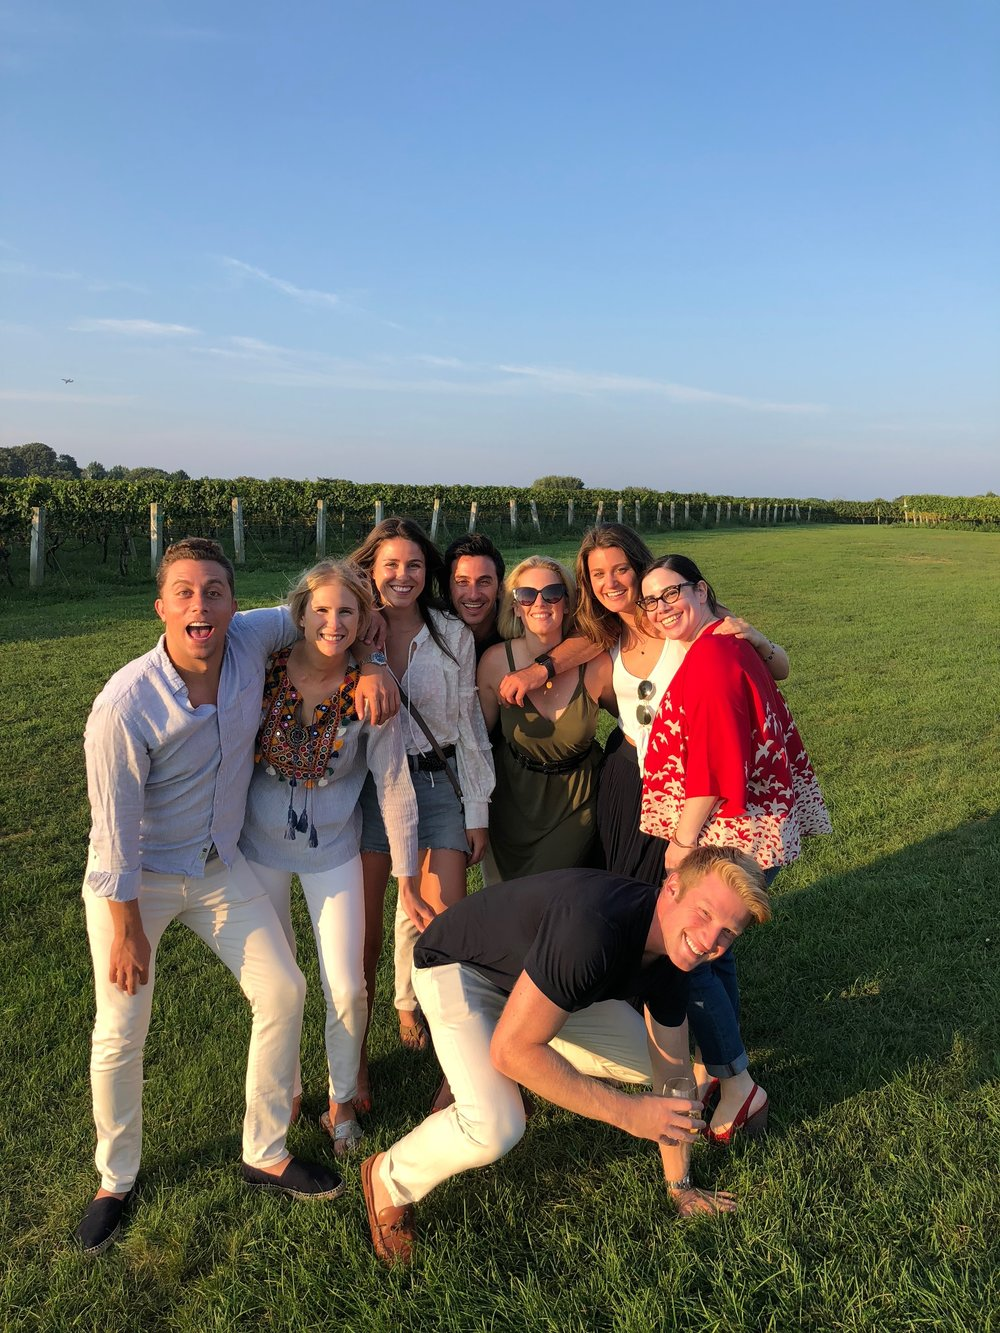 Team outting in the Hamptons